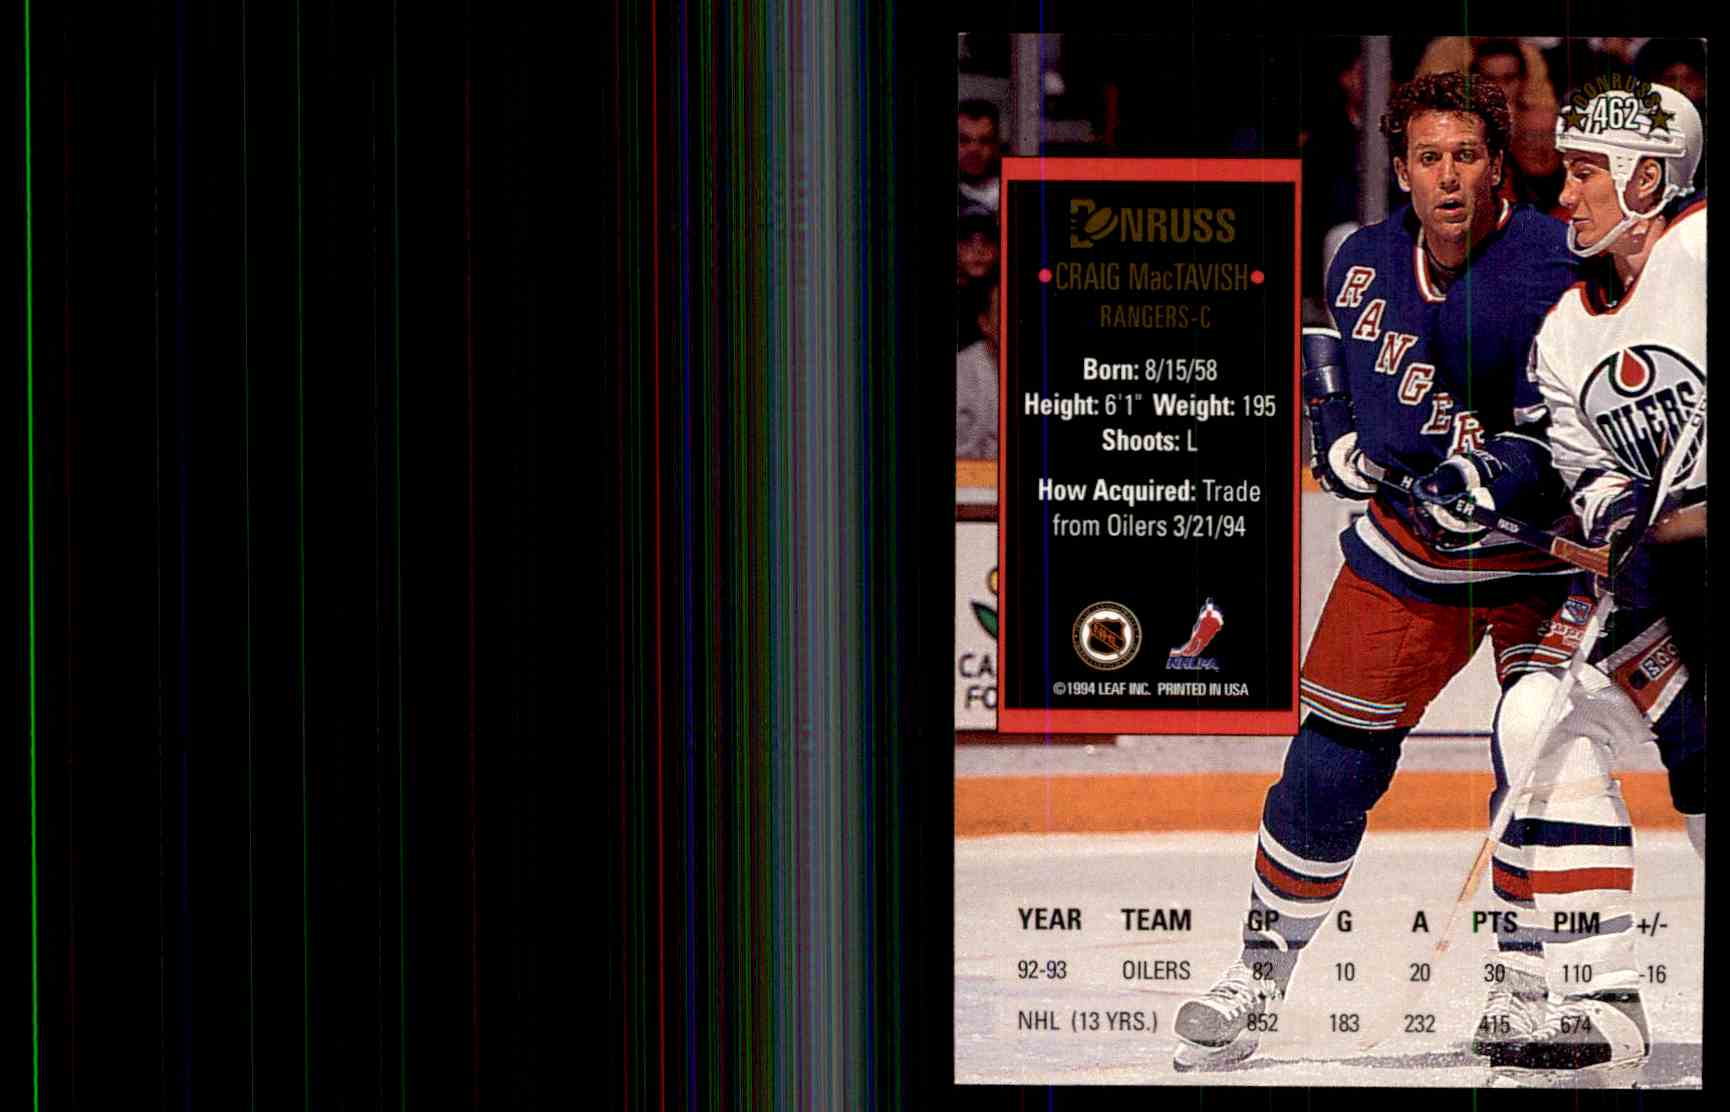 1993-94 Donruss Craig MacTavish #462 card back image